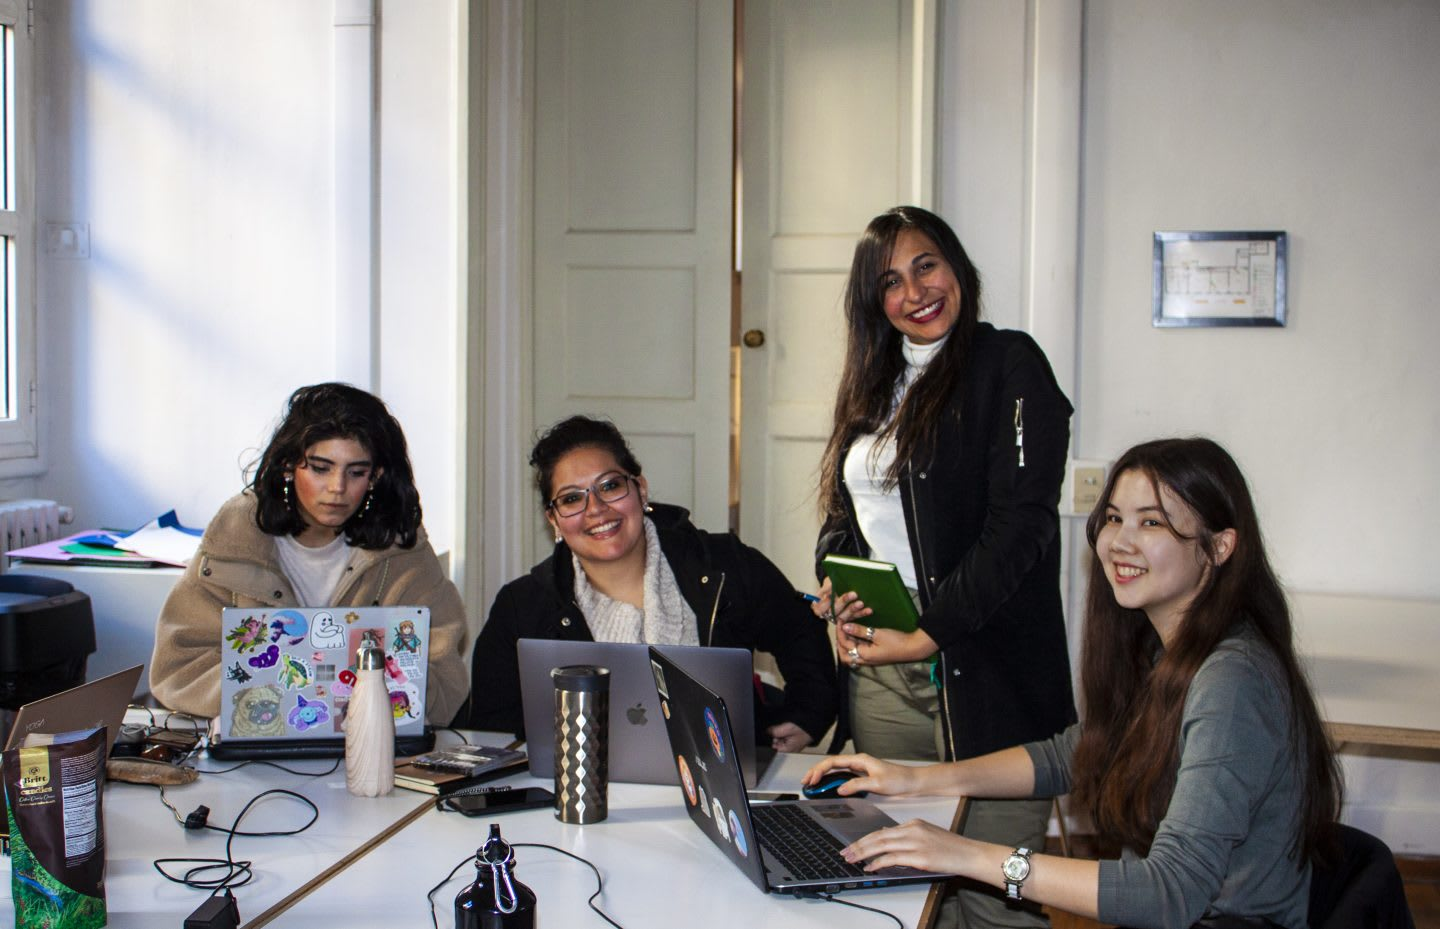 a team of female employees sitting at a desk working, playing as a team